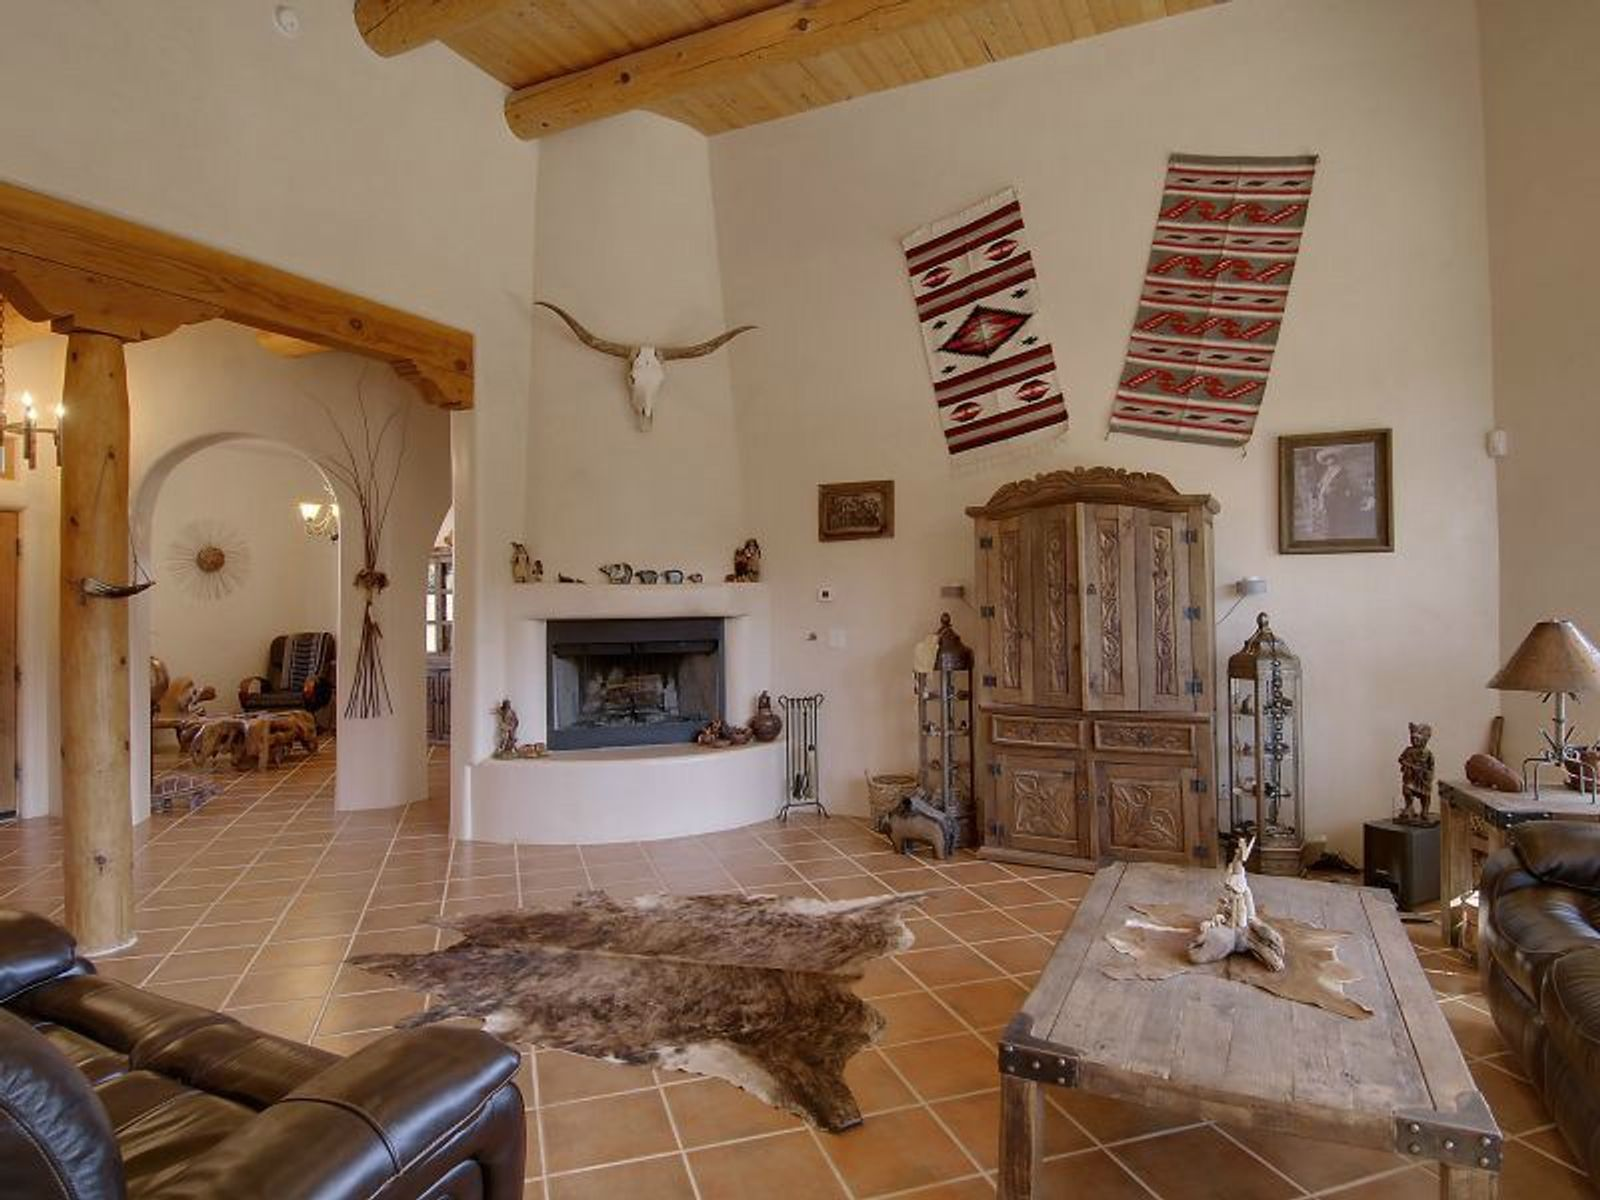 121 Rito Guicu, Santa Fe NM Single Family Home - Santa Fe Real Estate